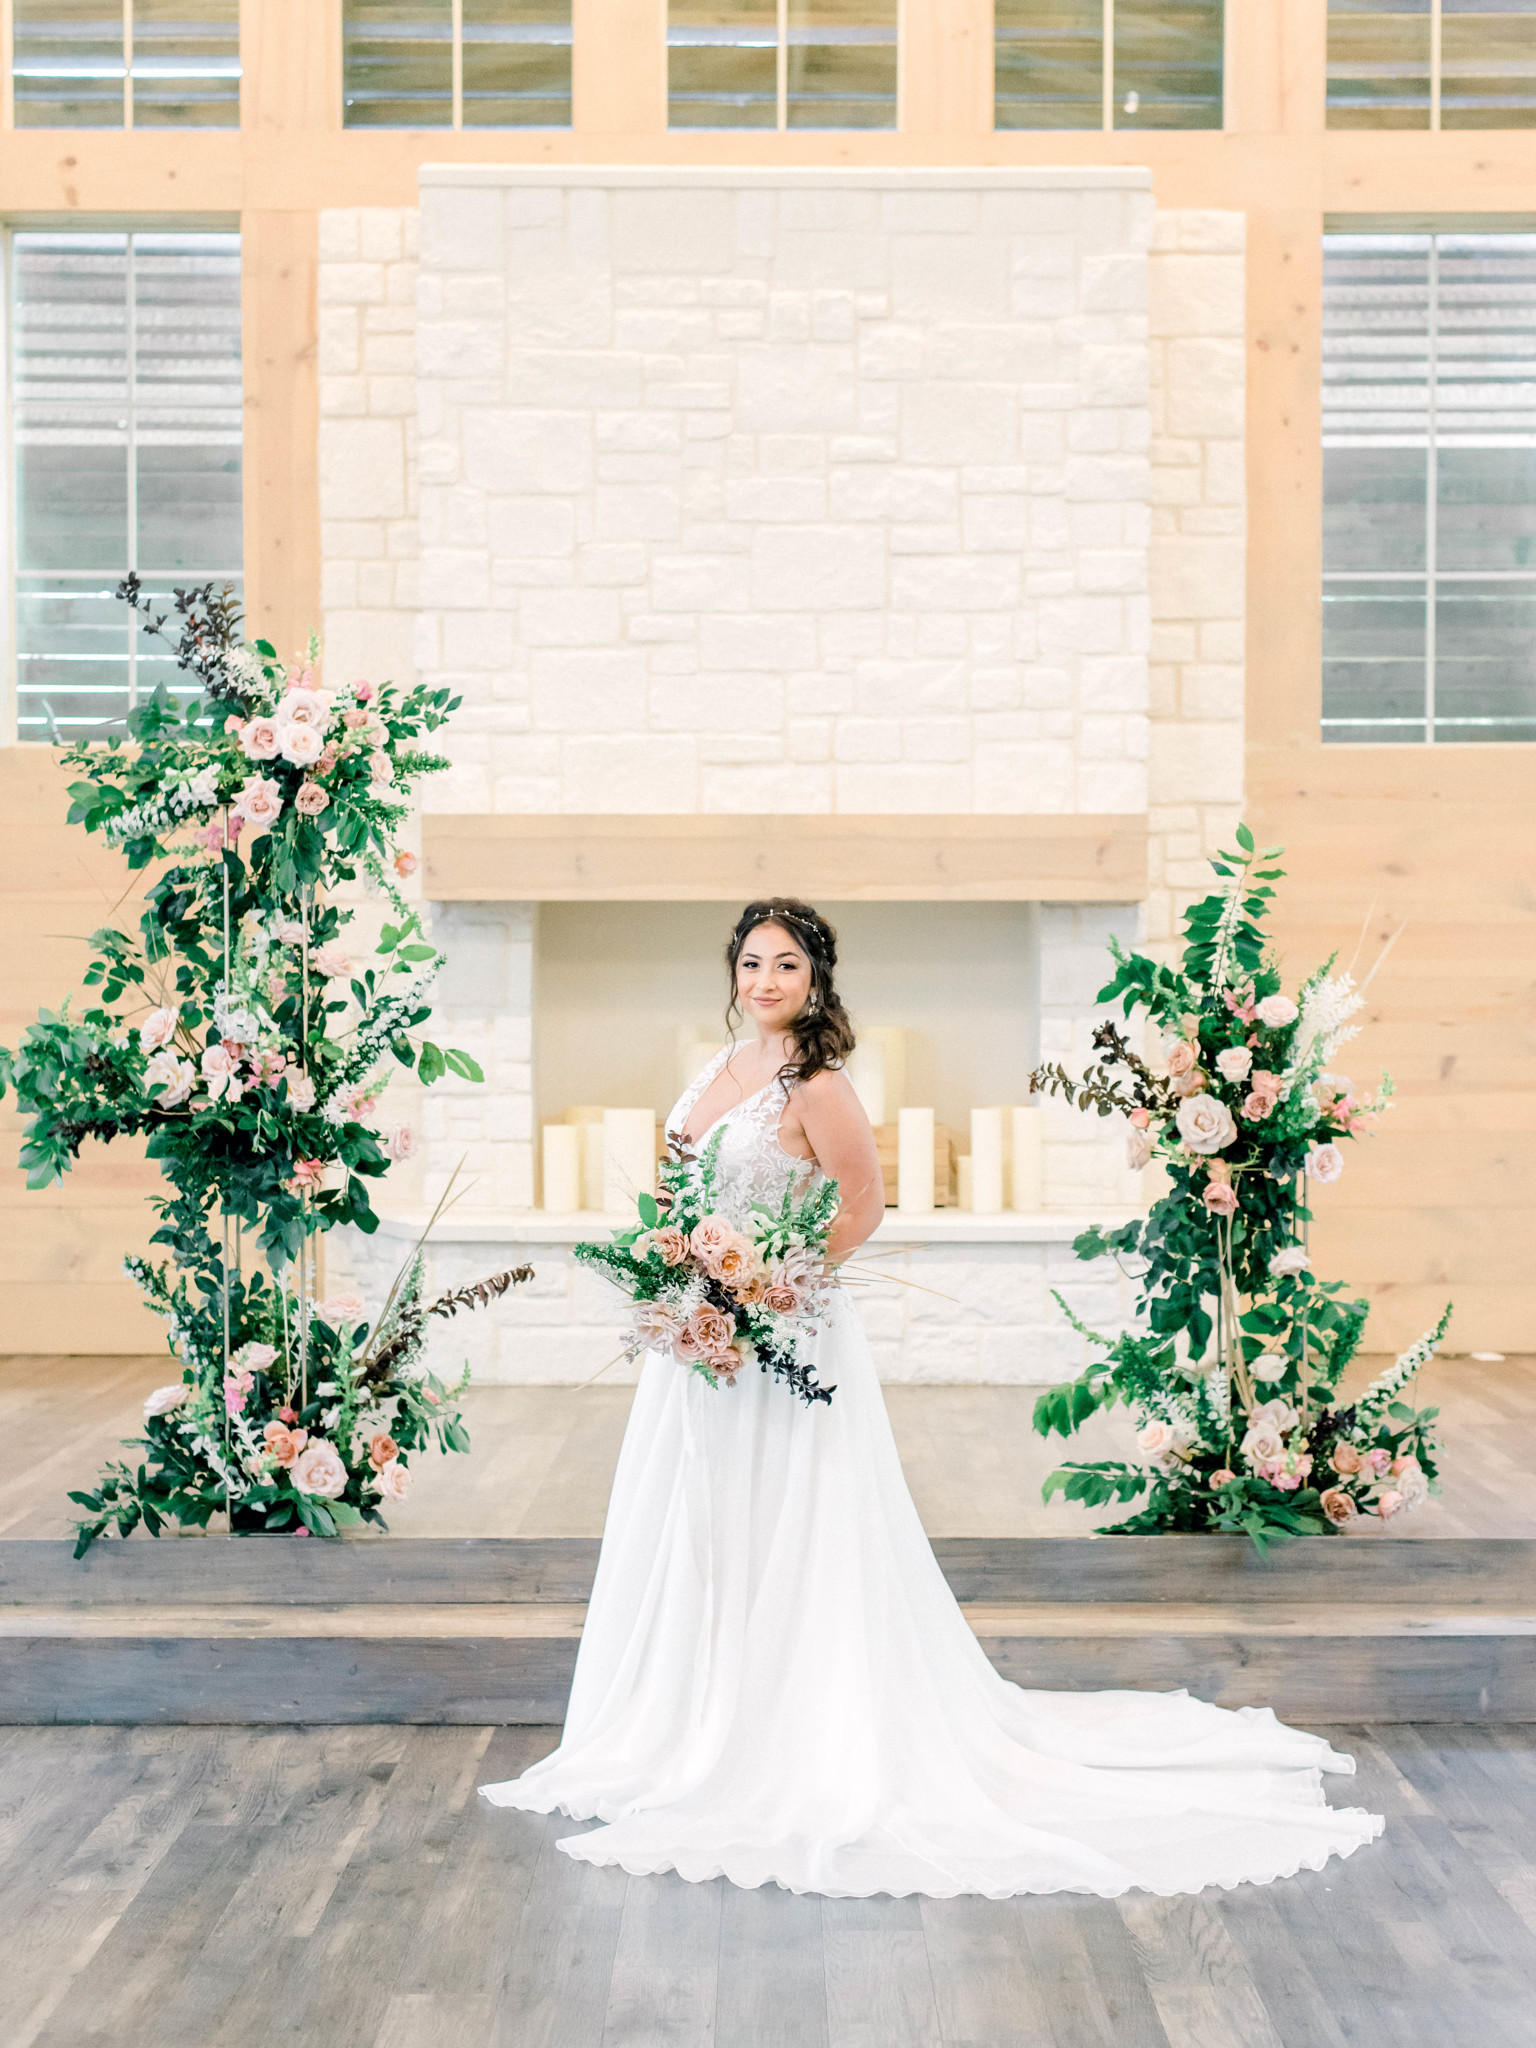 Bridal portrait: Whimsical mauve wedding inspiration on Alexa Kay Events. See more romantic wedding ideas at alexakayevents.com!